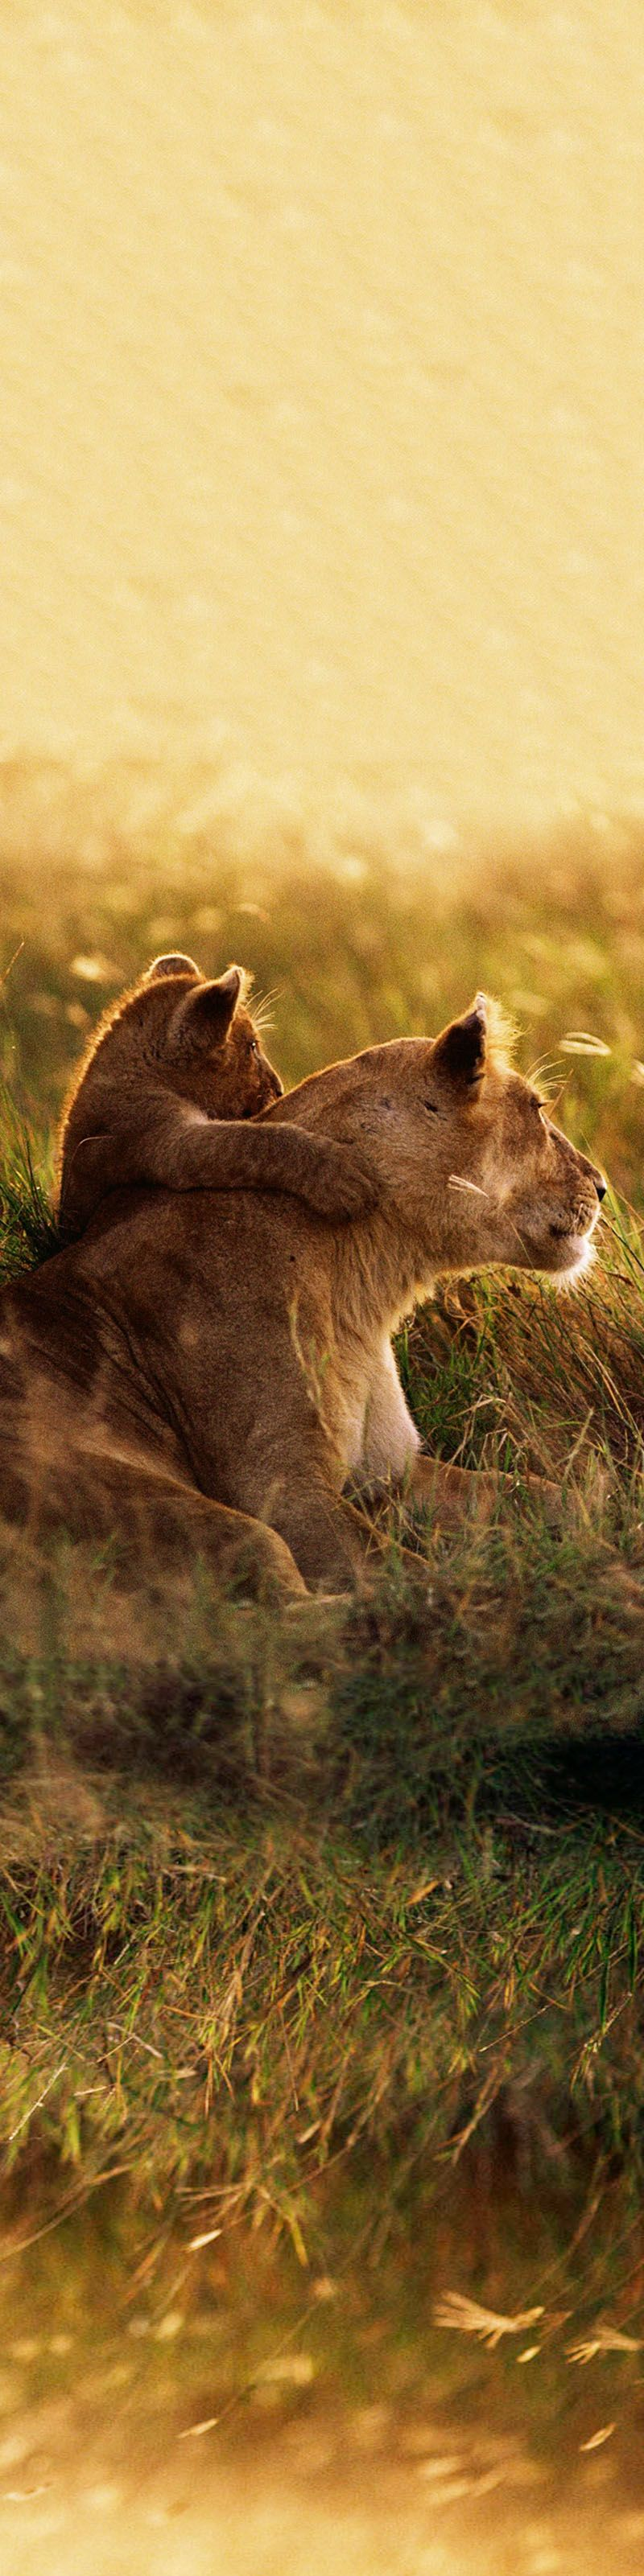 Volunteer with Via Volunteers in South Africa and check out our gorgeous babies in the wild! Lion